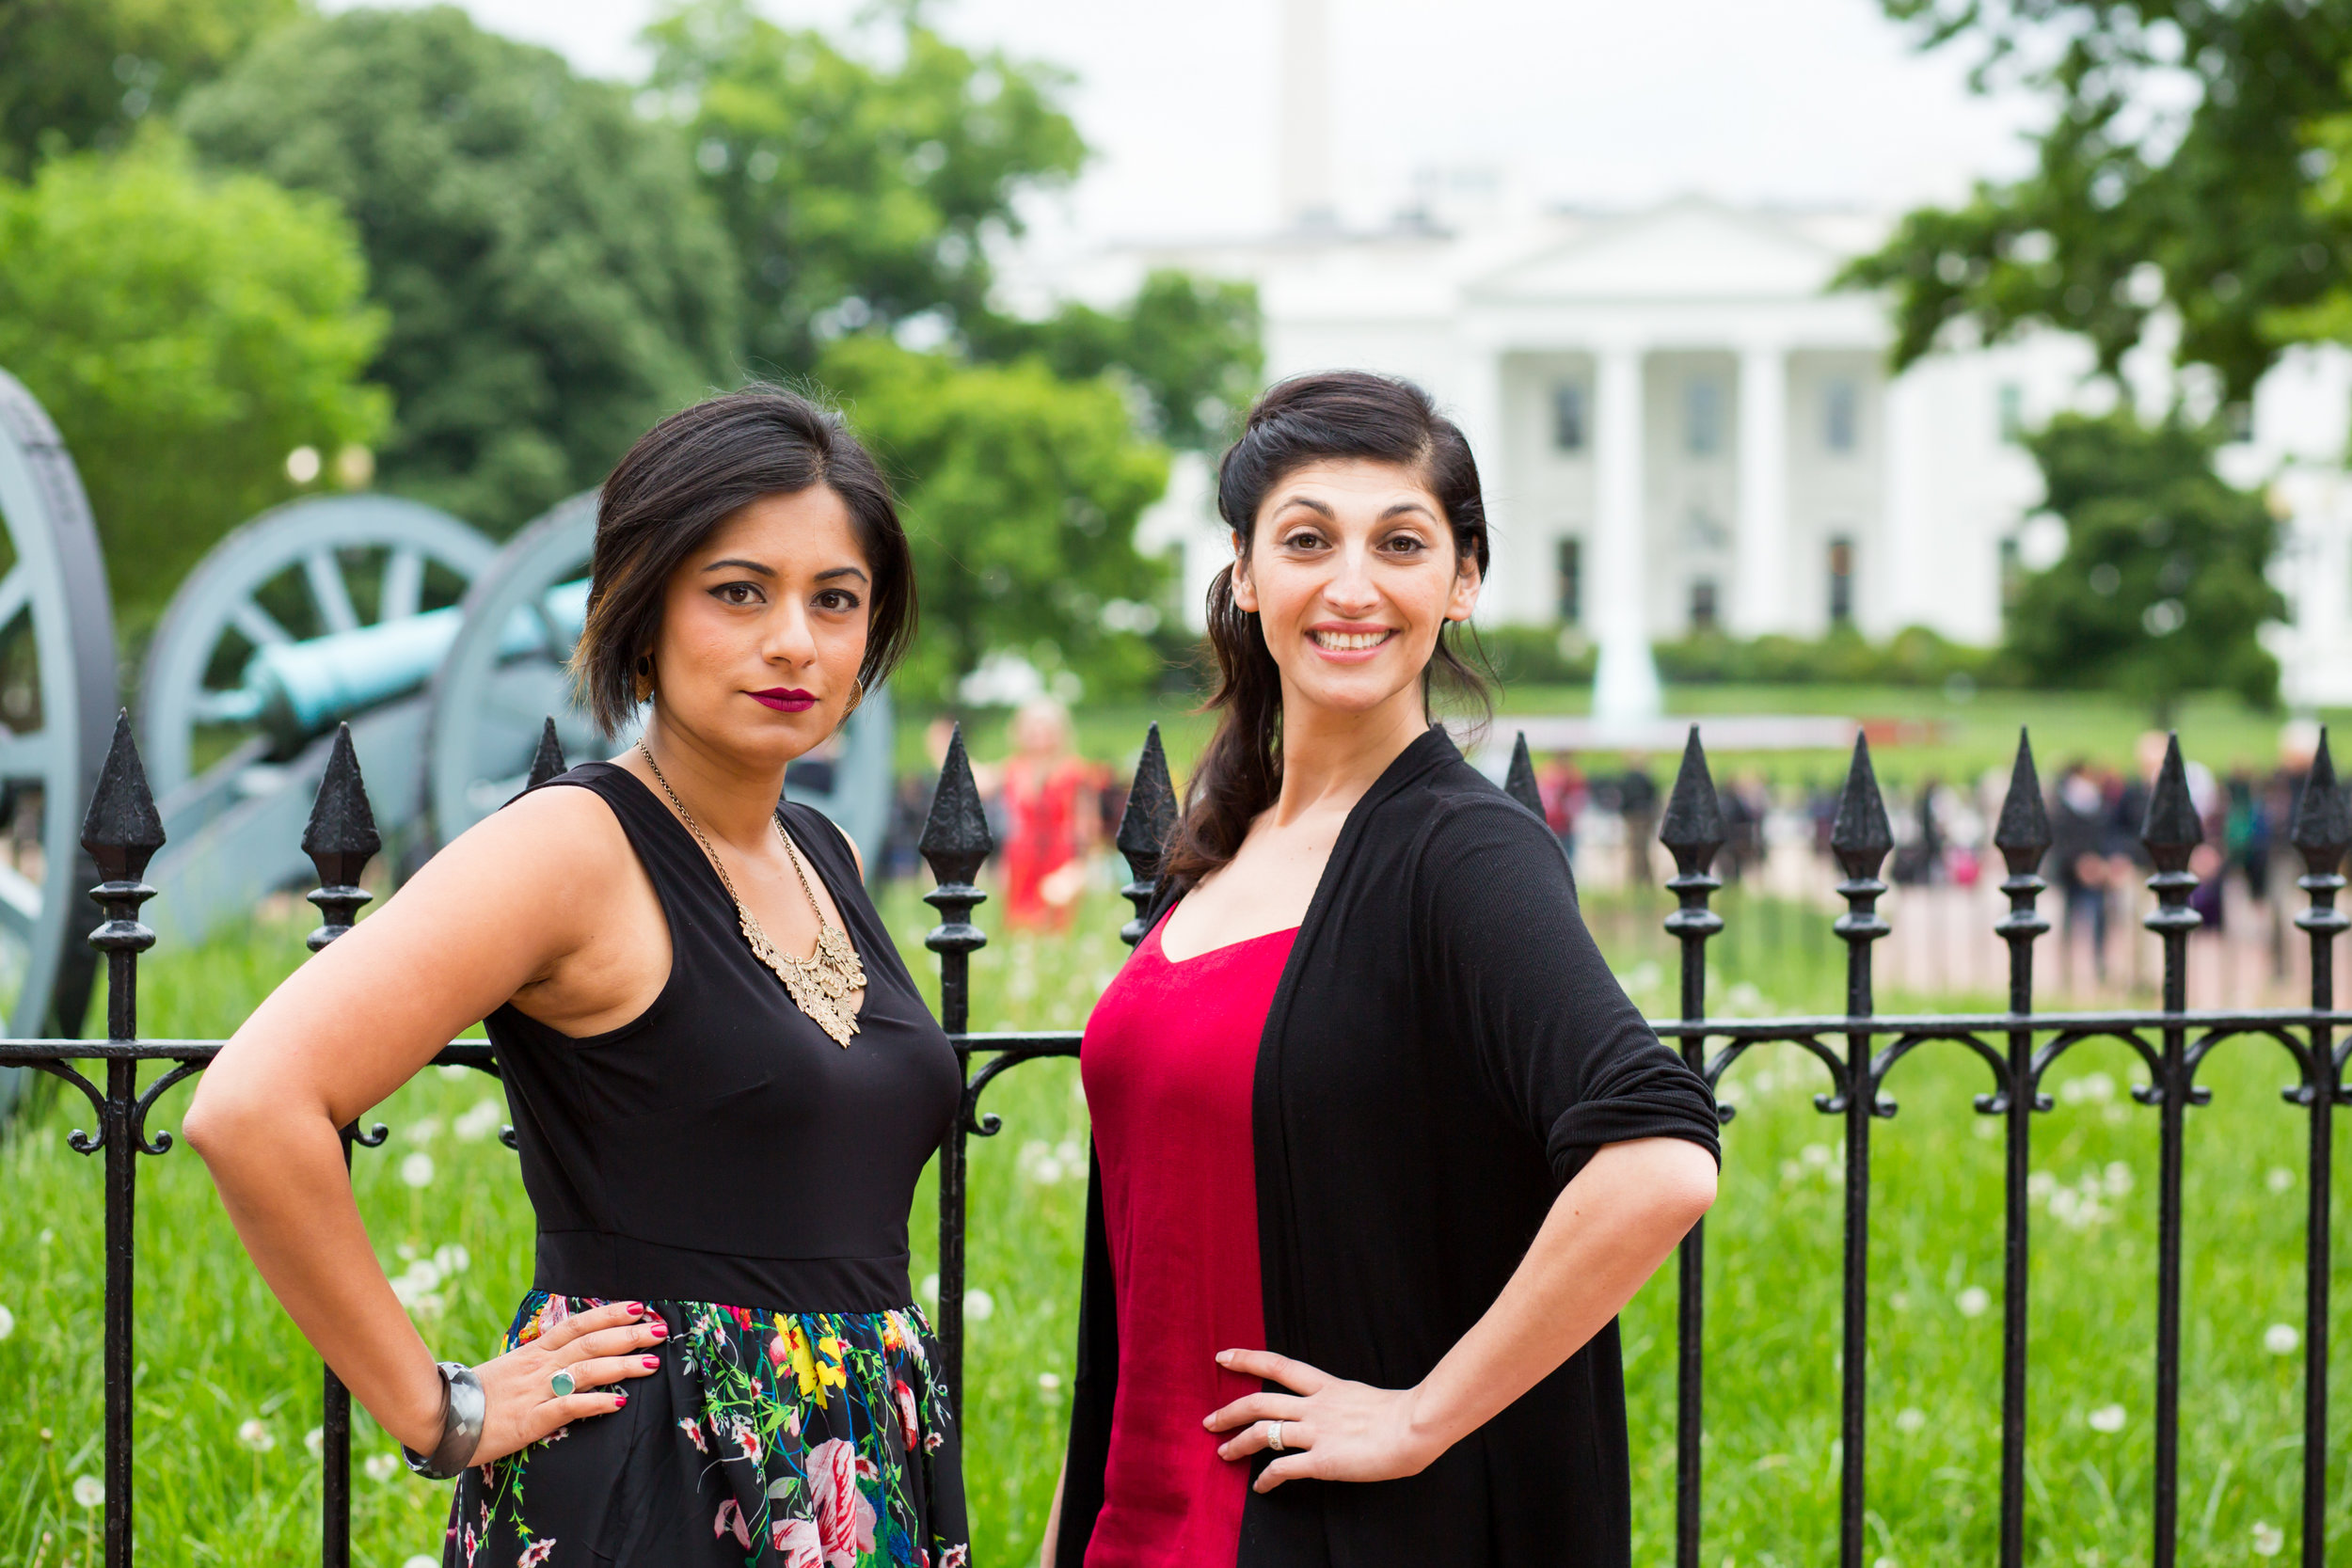 GMBM Ladies In Front of White House 2016 by Les Talusan.jpg